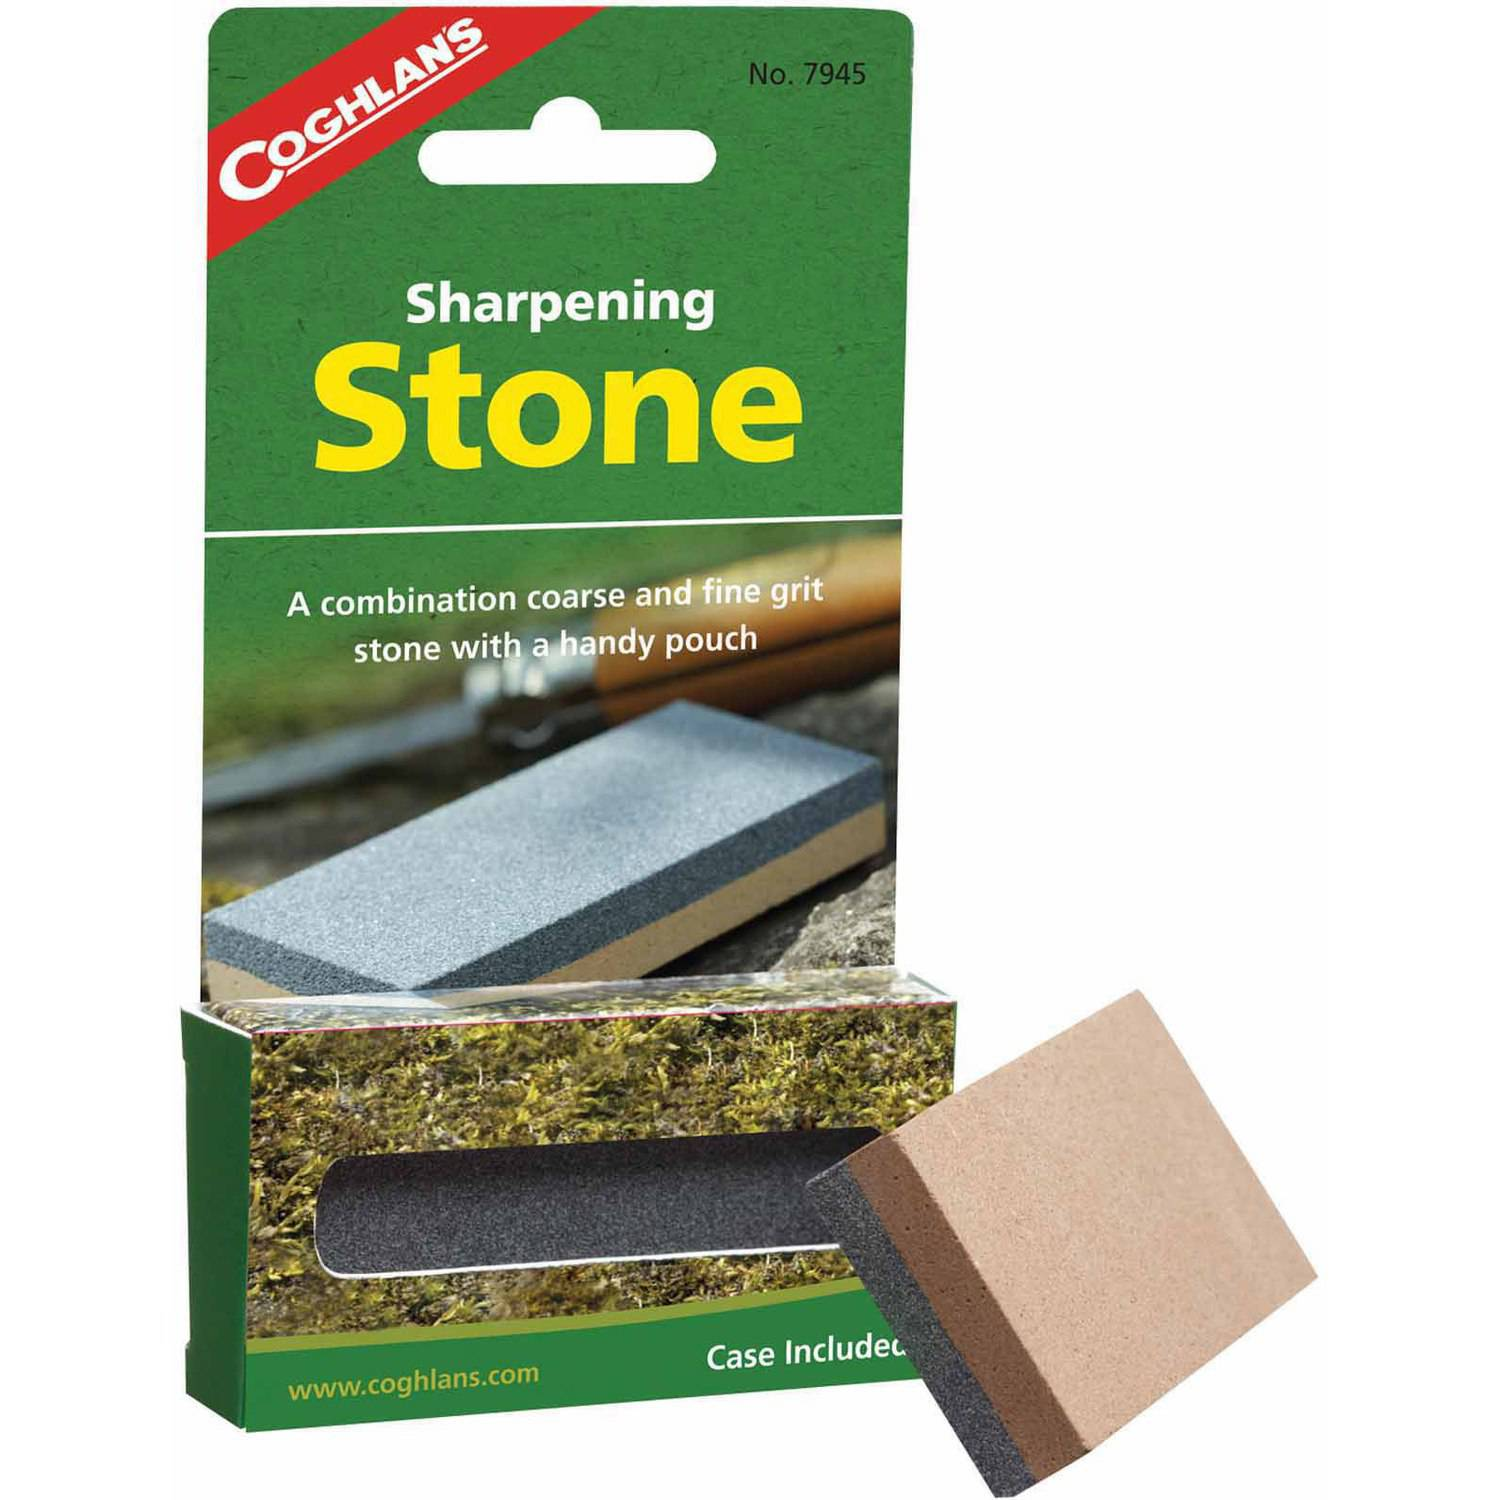 Coghlan's Sharpening Stone by Coghlans